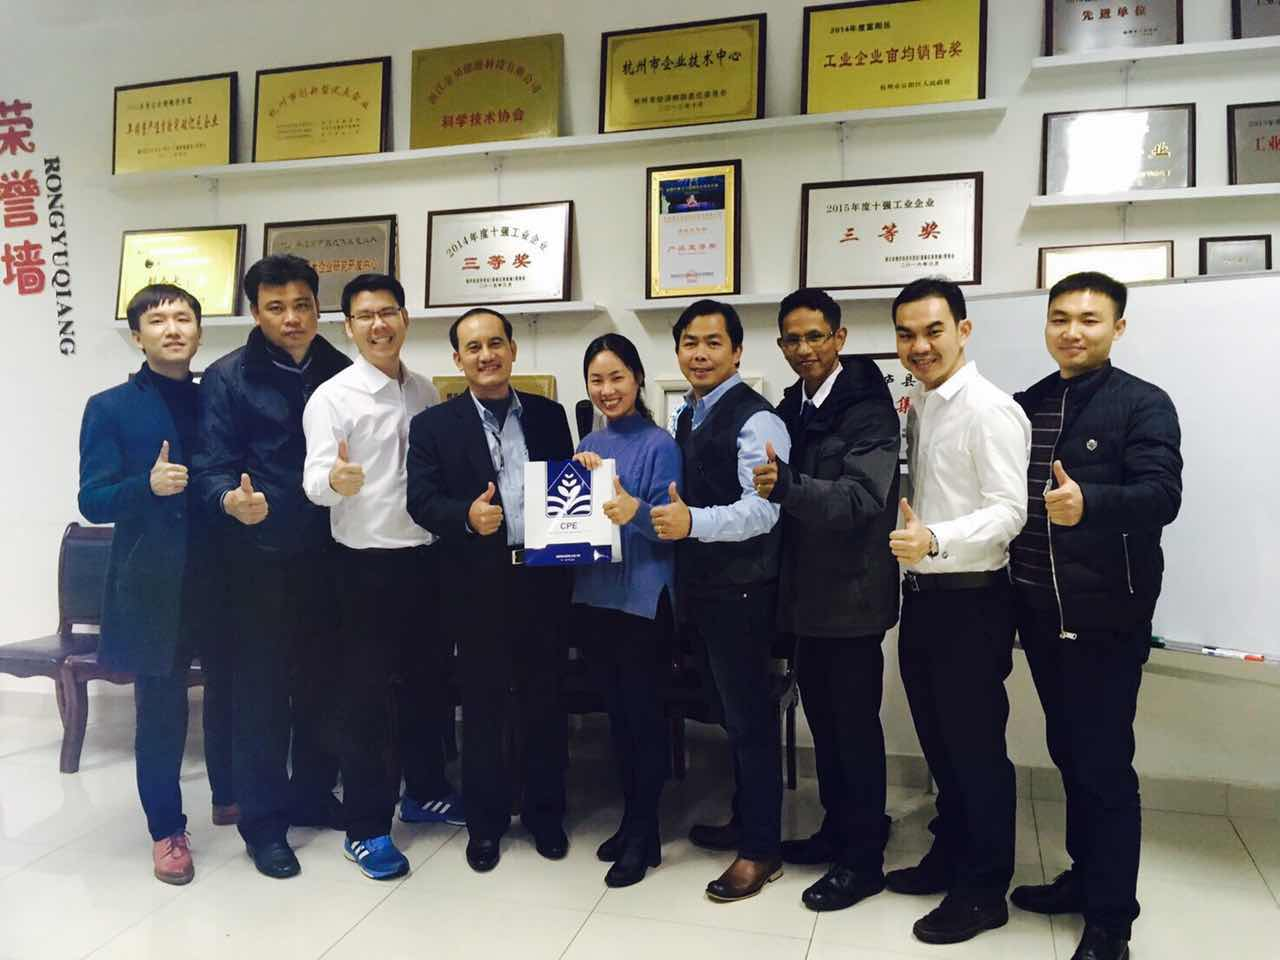 Warmly welcome CPE Technical Teams from Charoen Pokphand Group visiting our Suntellite Factory